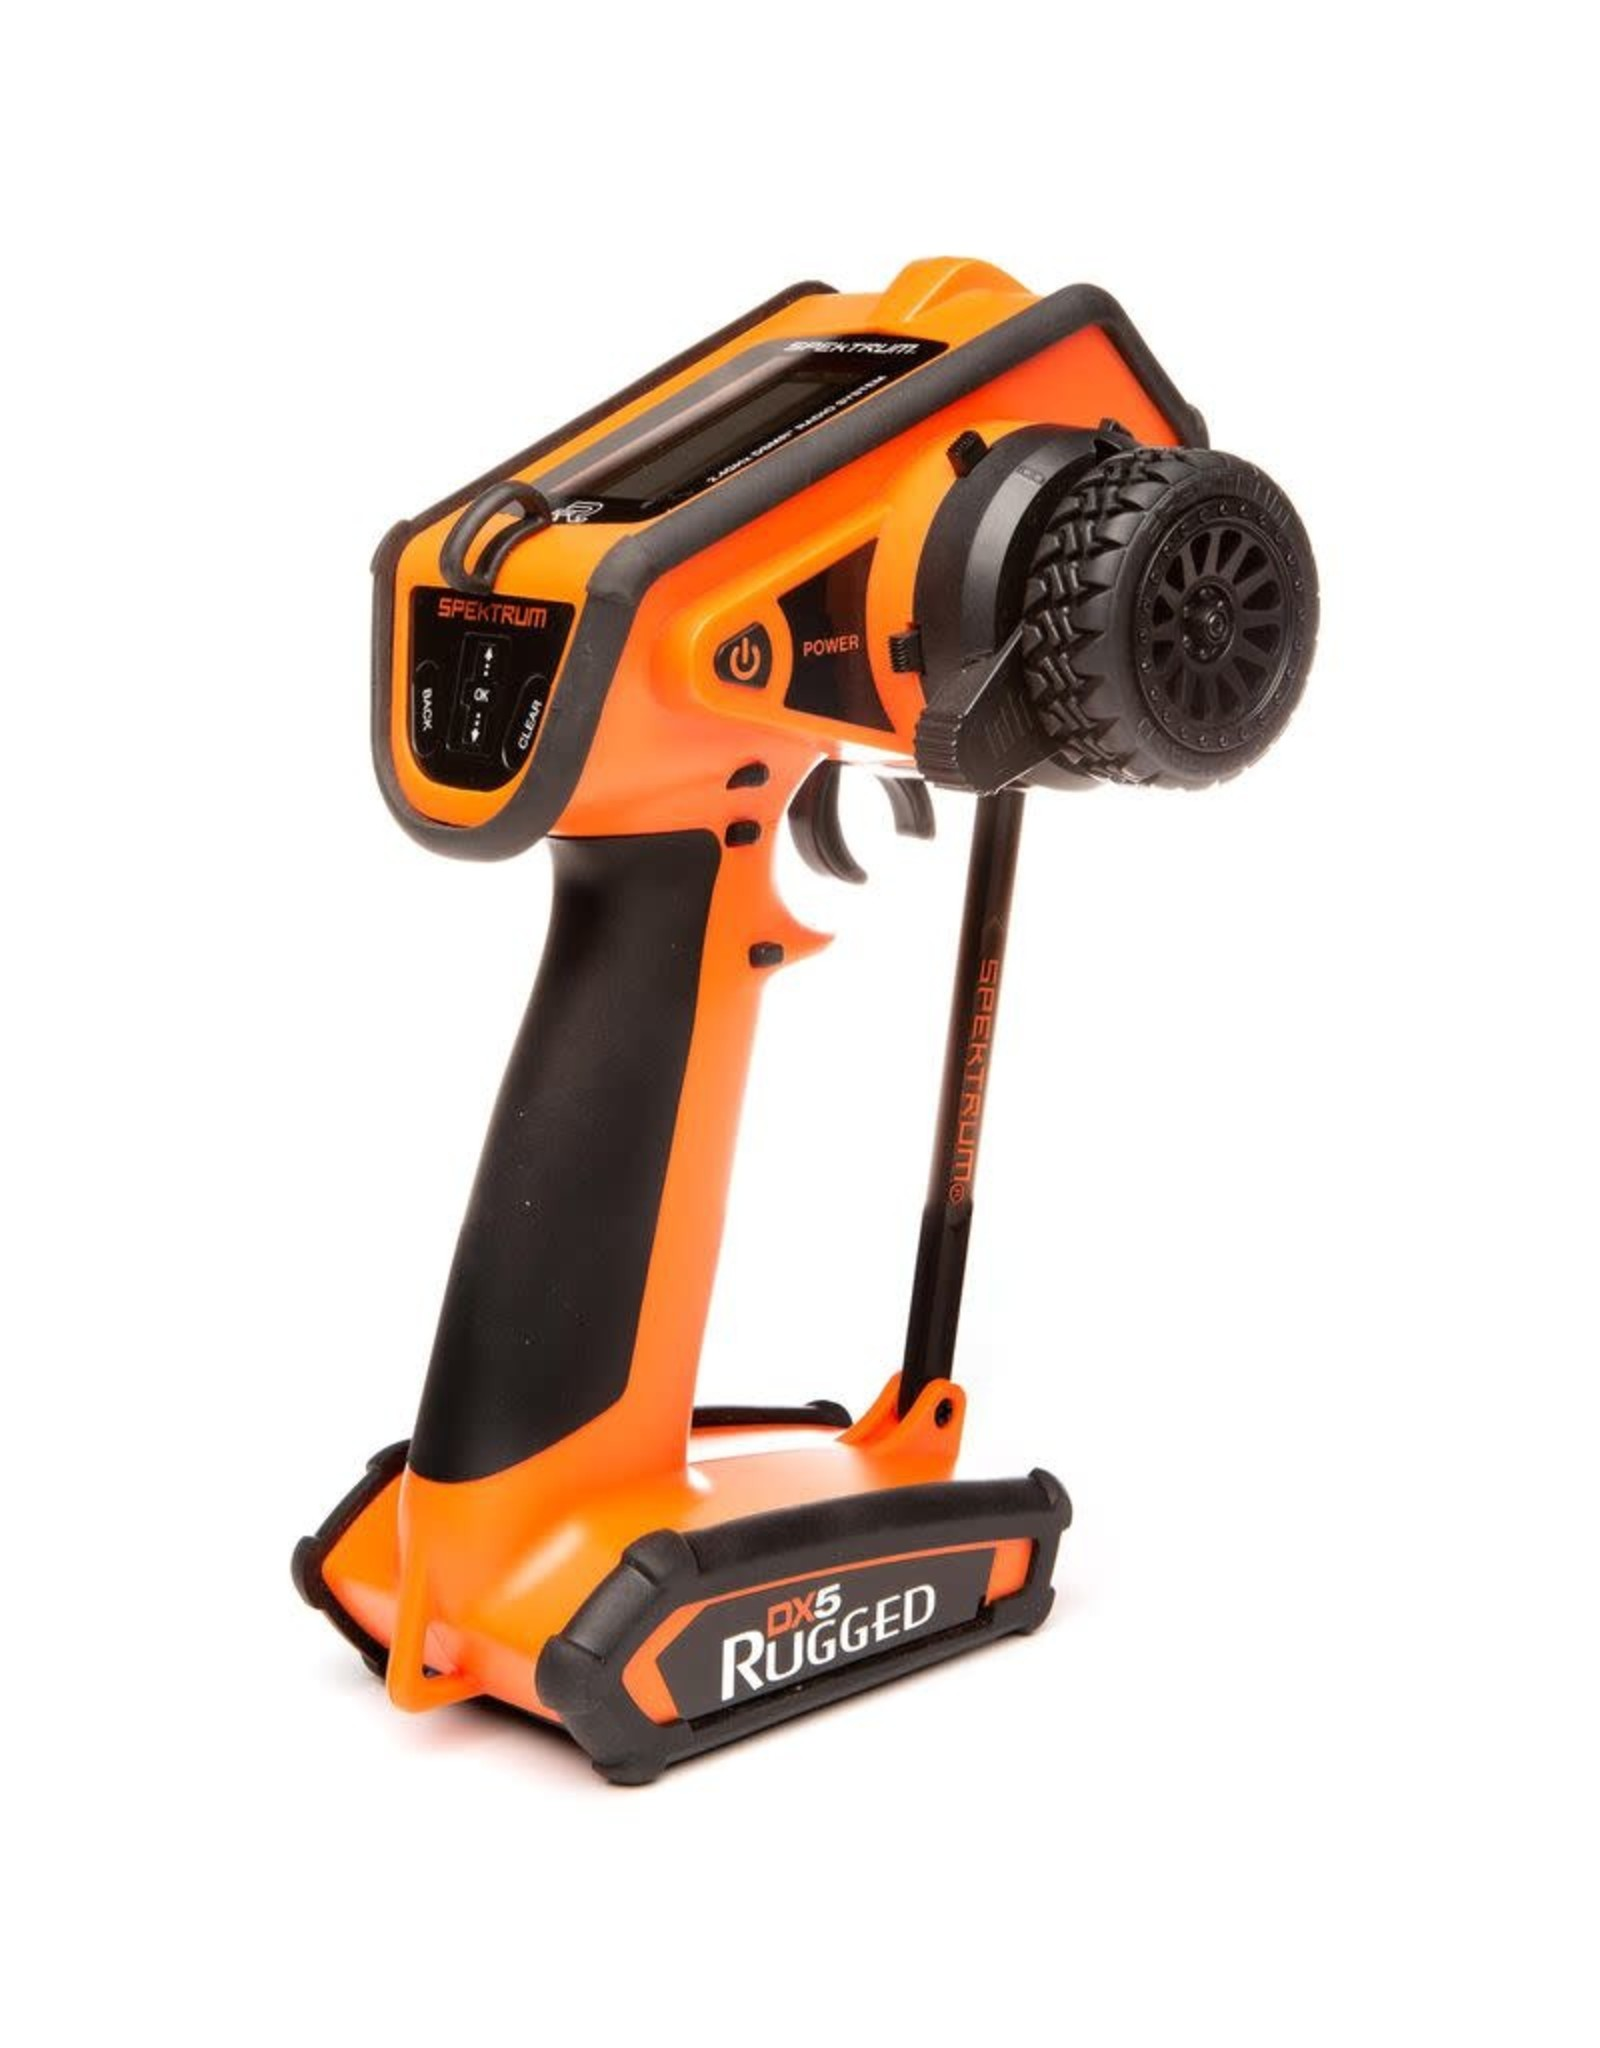 Spektrum DX5 Rugged DSMR TX  only Orange SPMR52000